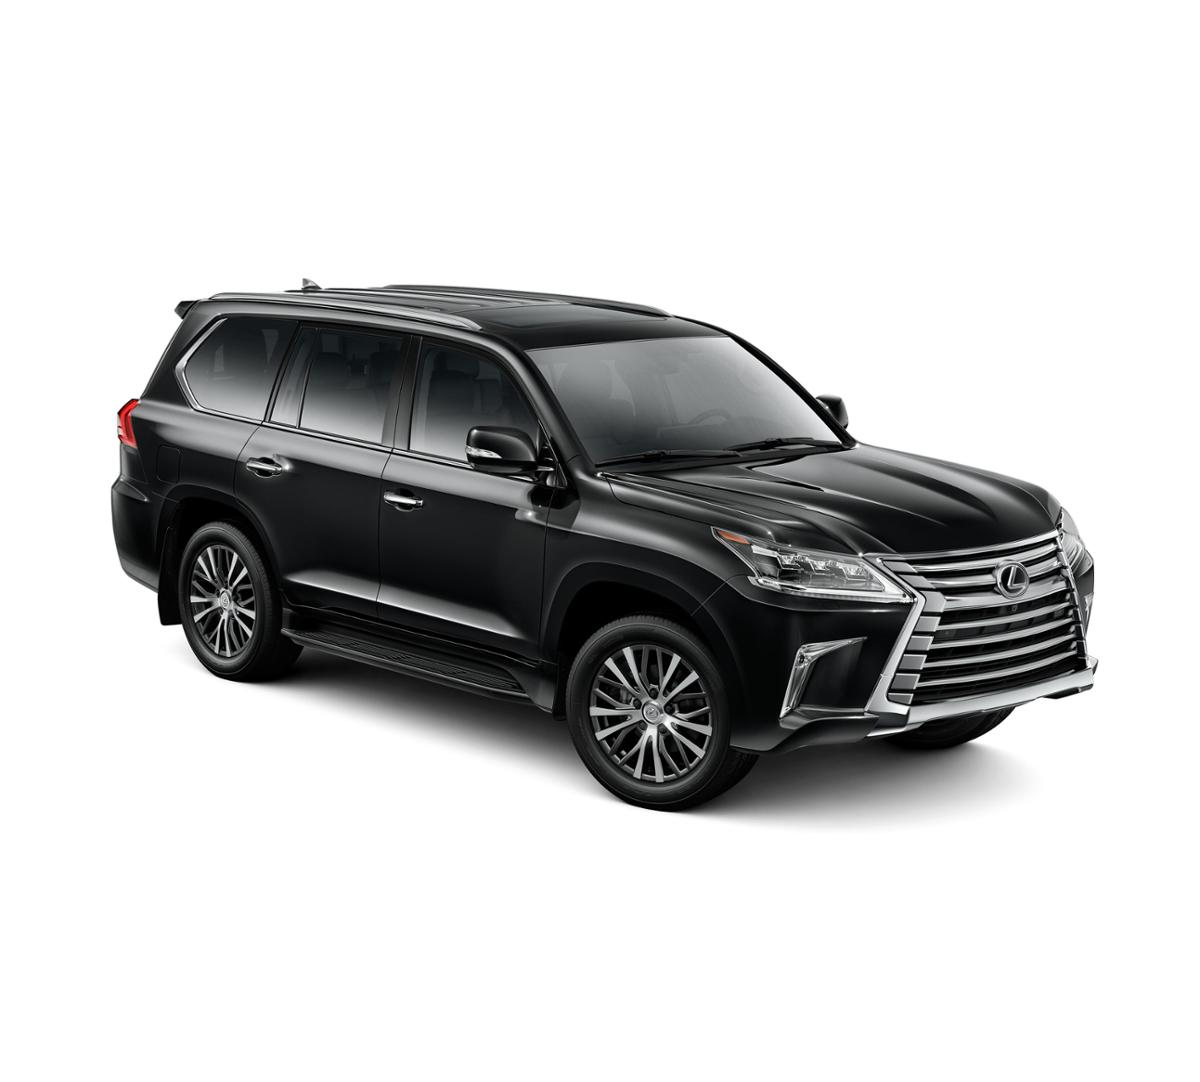 2018 Lexus LX 570 Vehicle Photo in Dallas, TX 75209